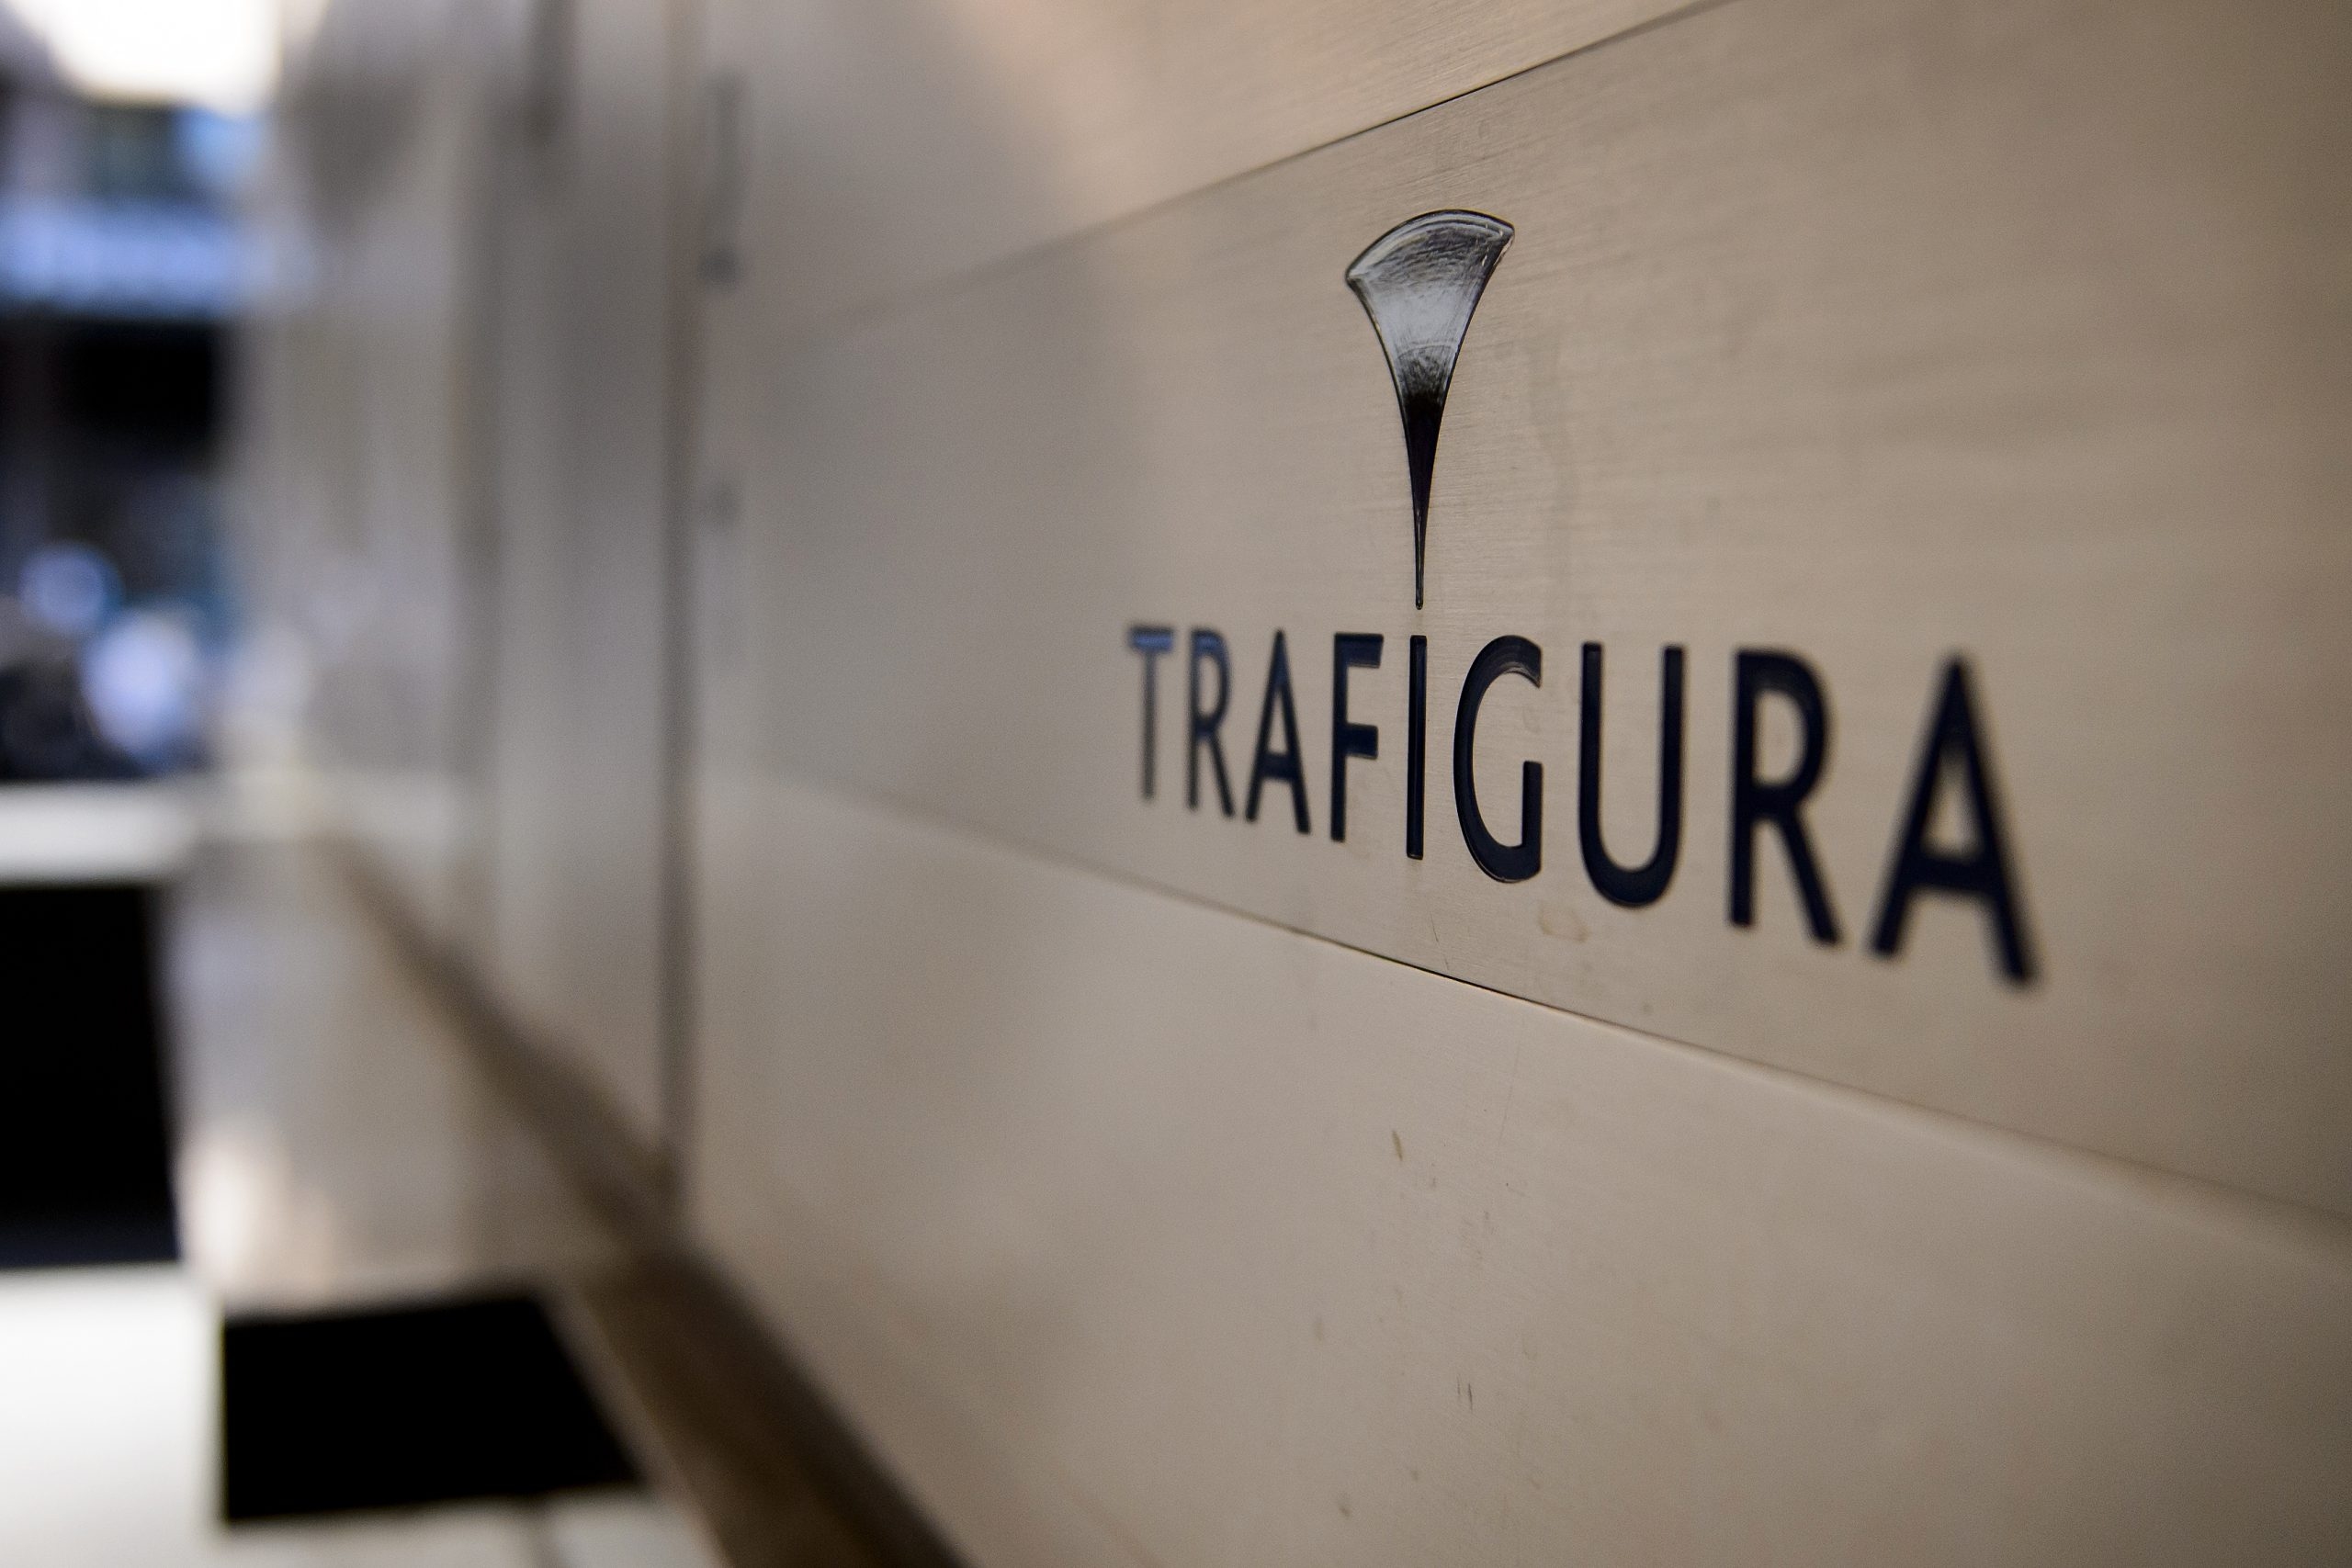 Global commodities trader Trafigura has bought a six per cent stake in oil explorer President Energy, which focuses on Latin America.